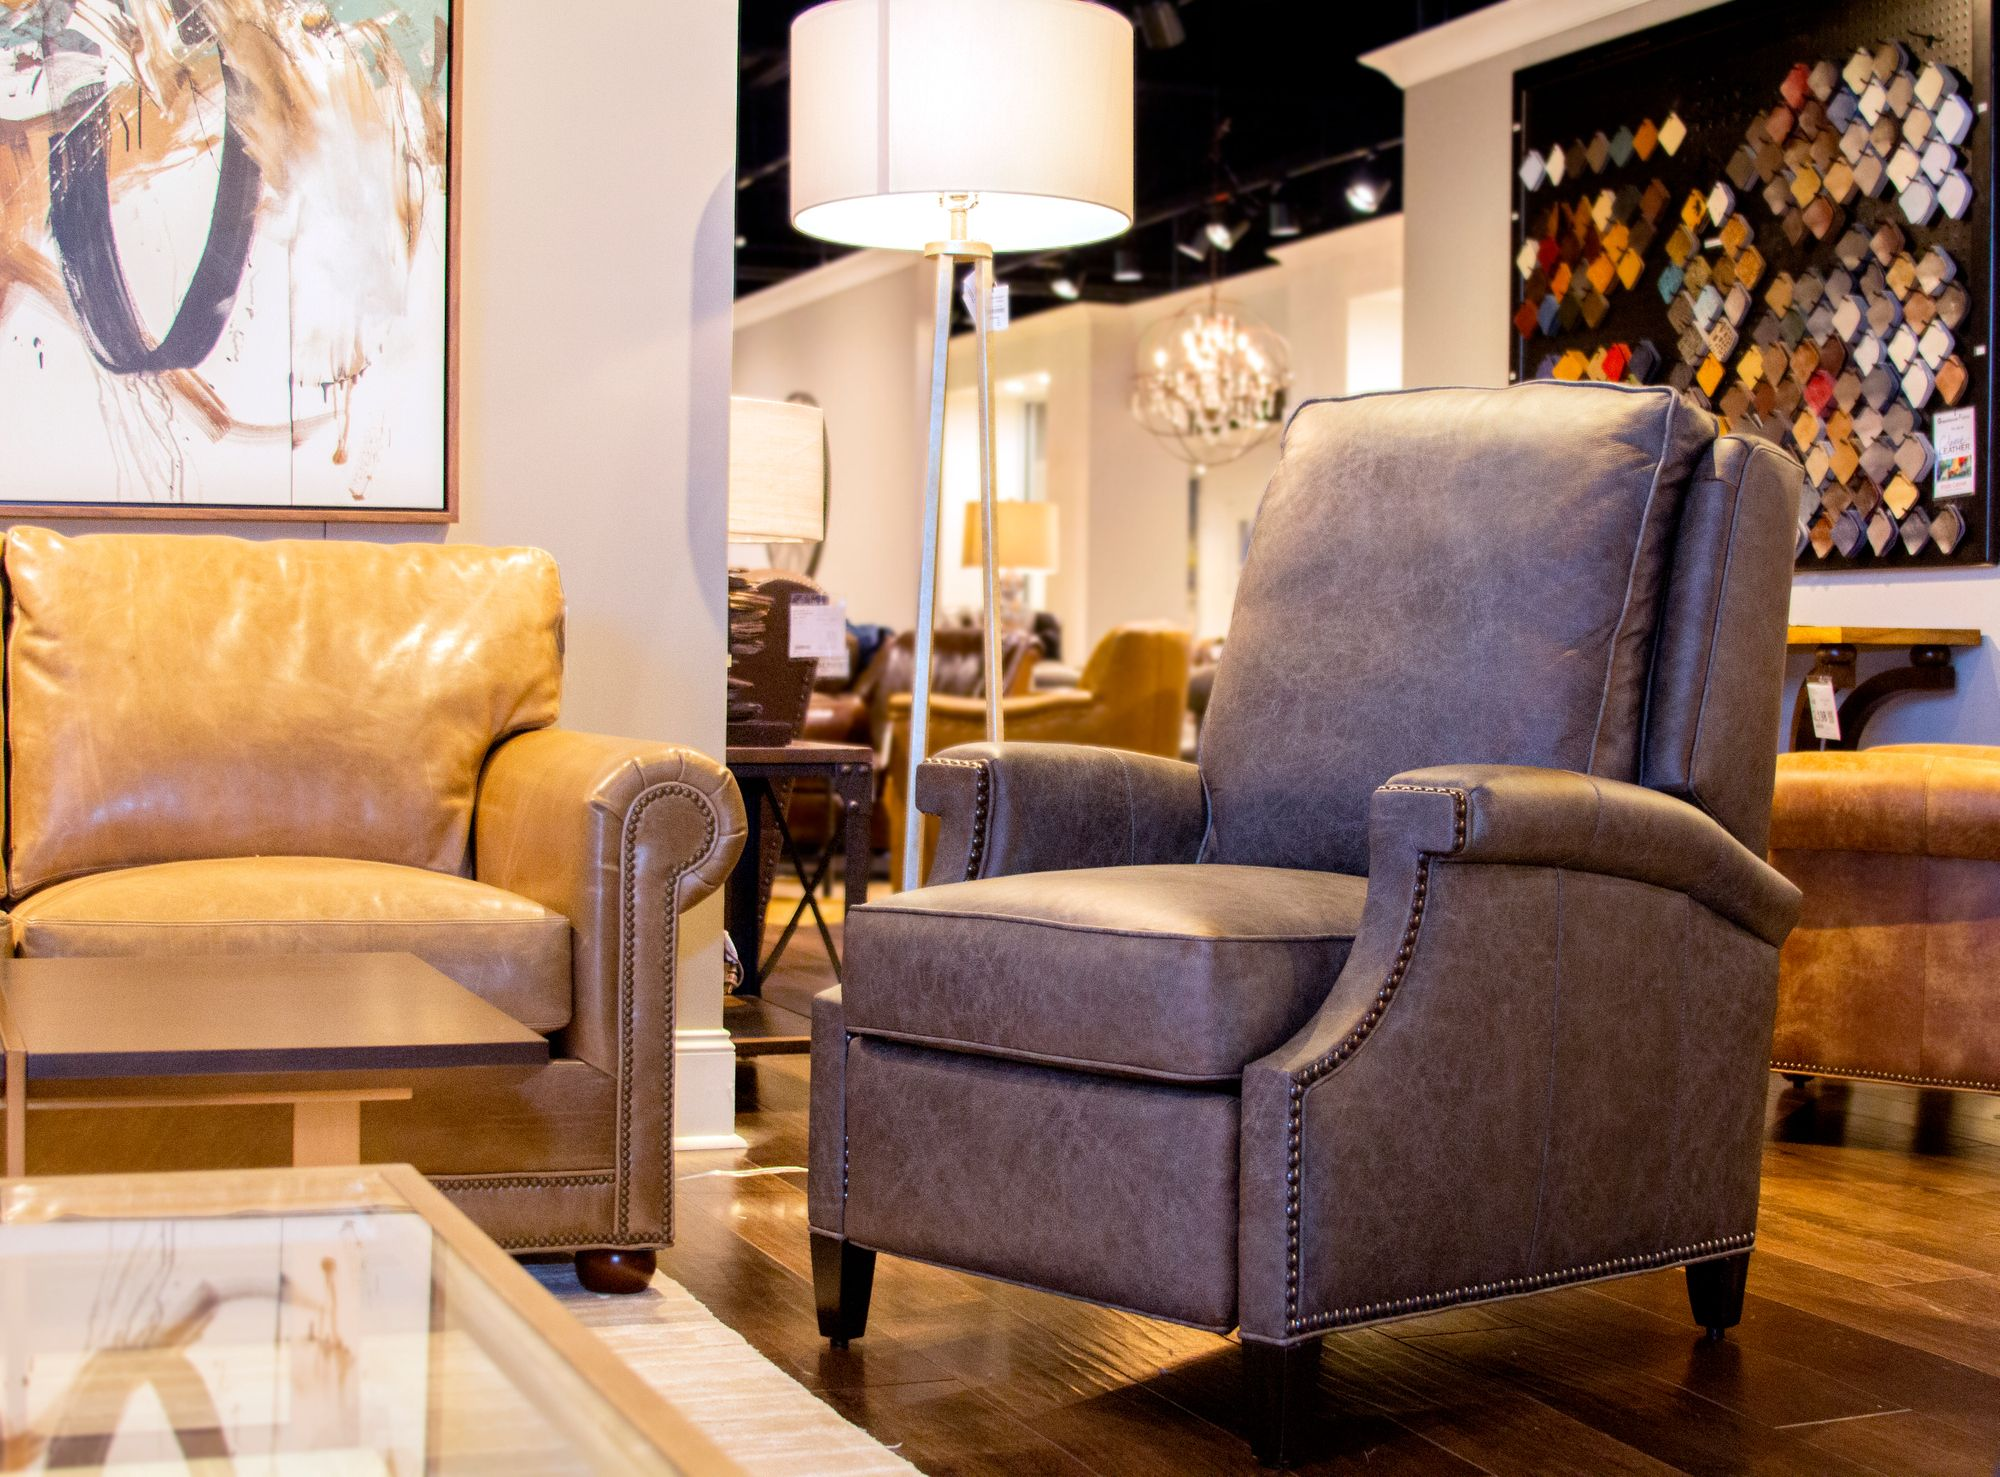 Recliners Motorized Seating Furniture Leather Furniture Seating